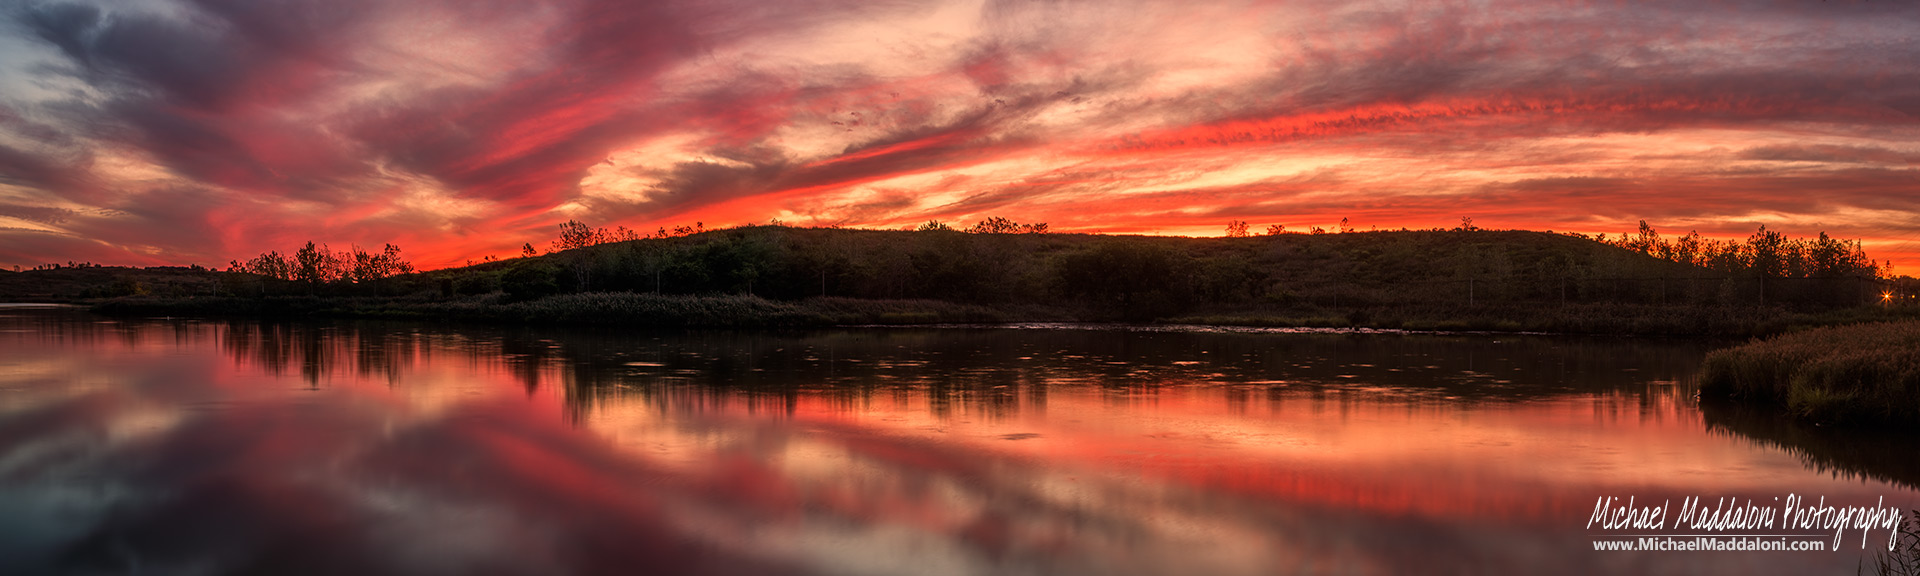 meadowlands-last-susnet-of-summer-2016-0i9a3270-hdr-pano-1